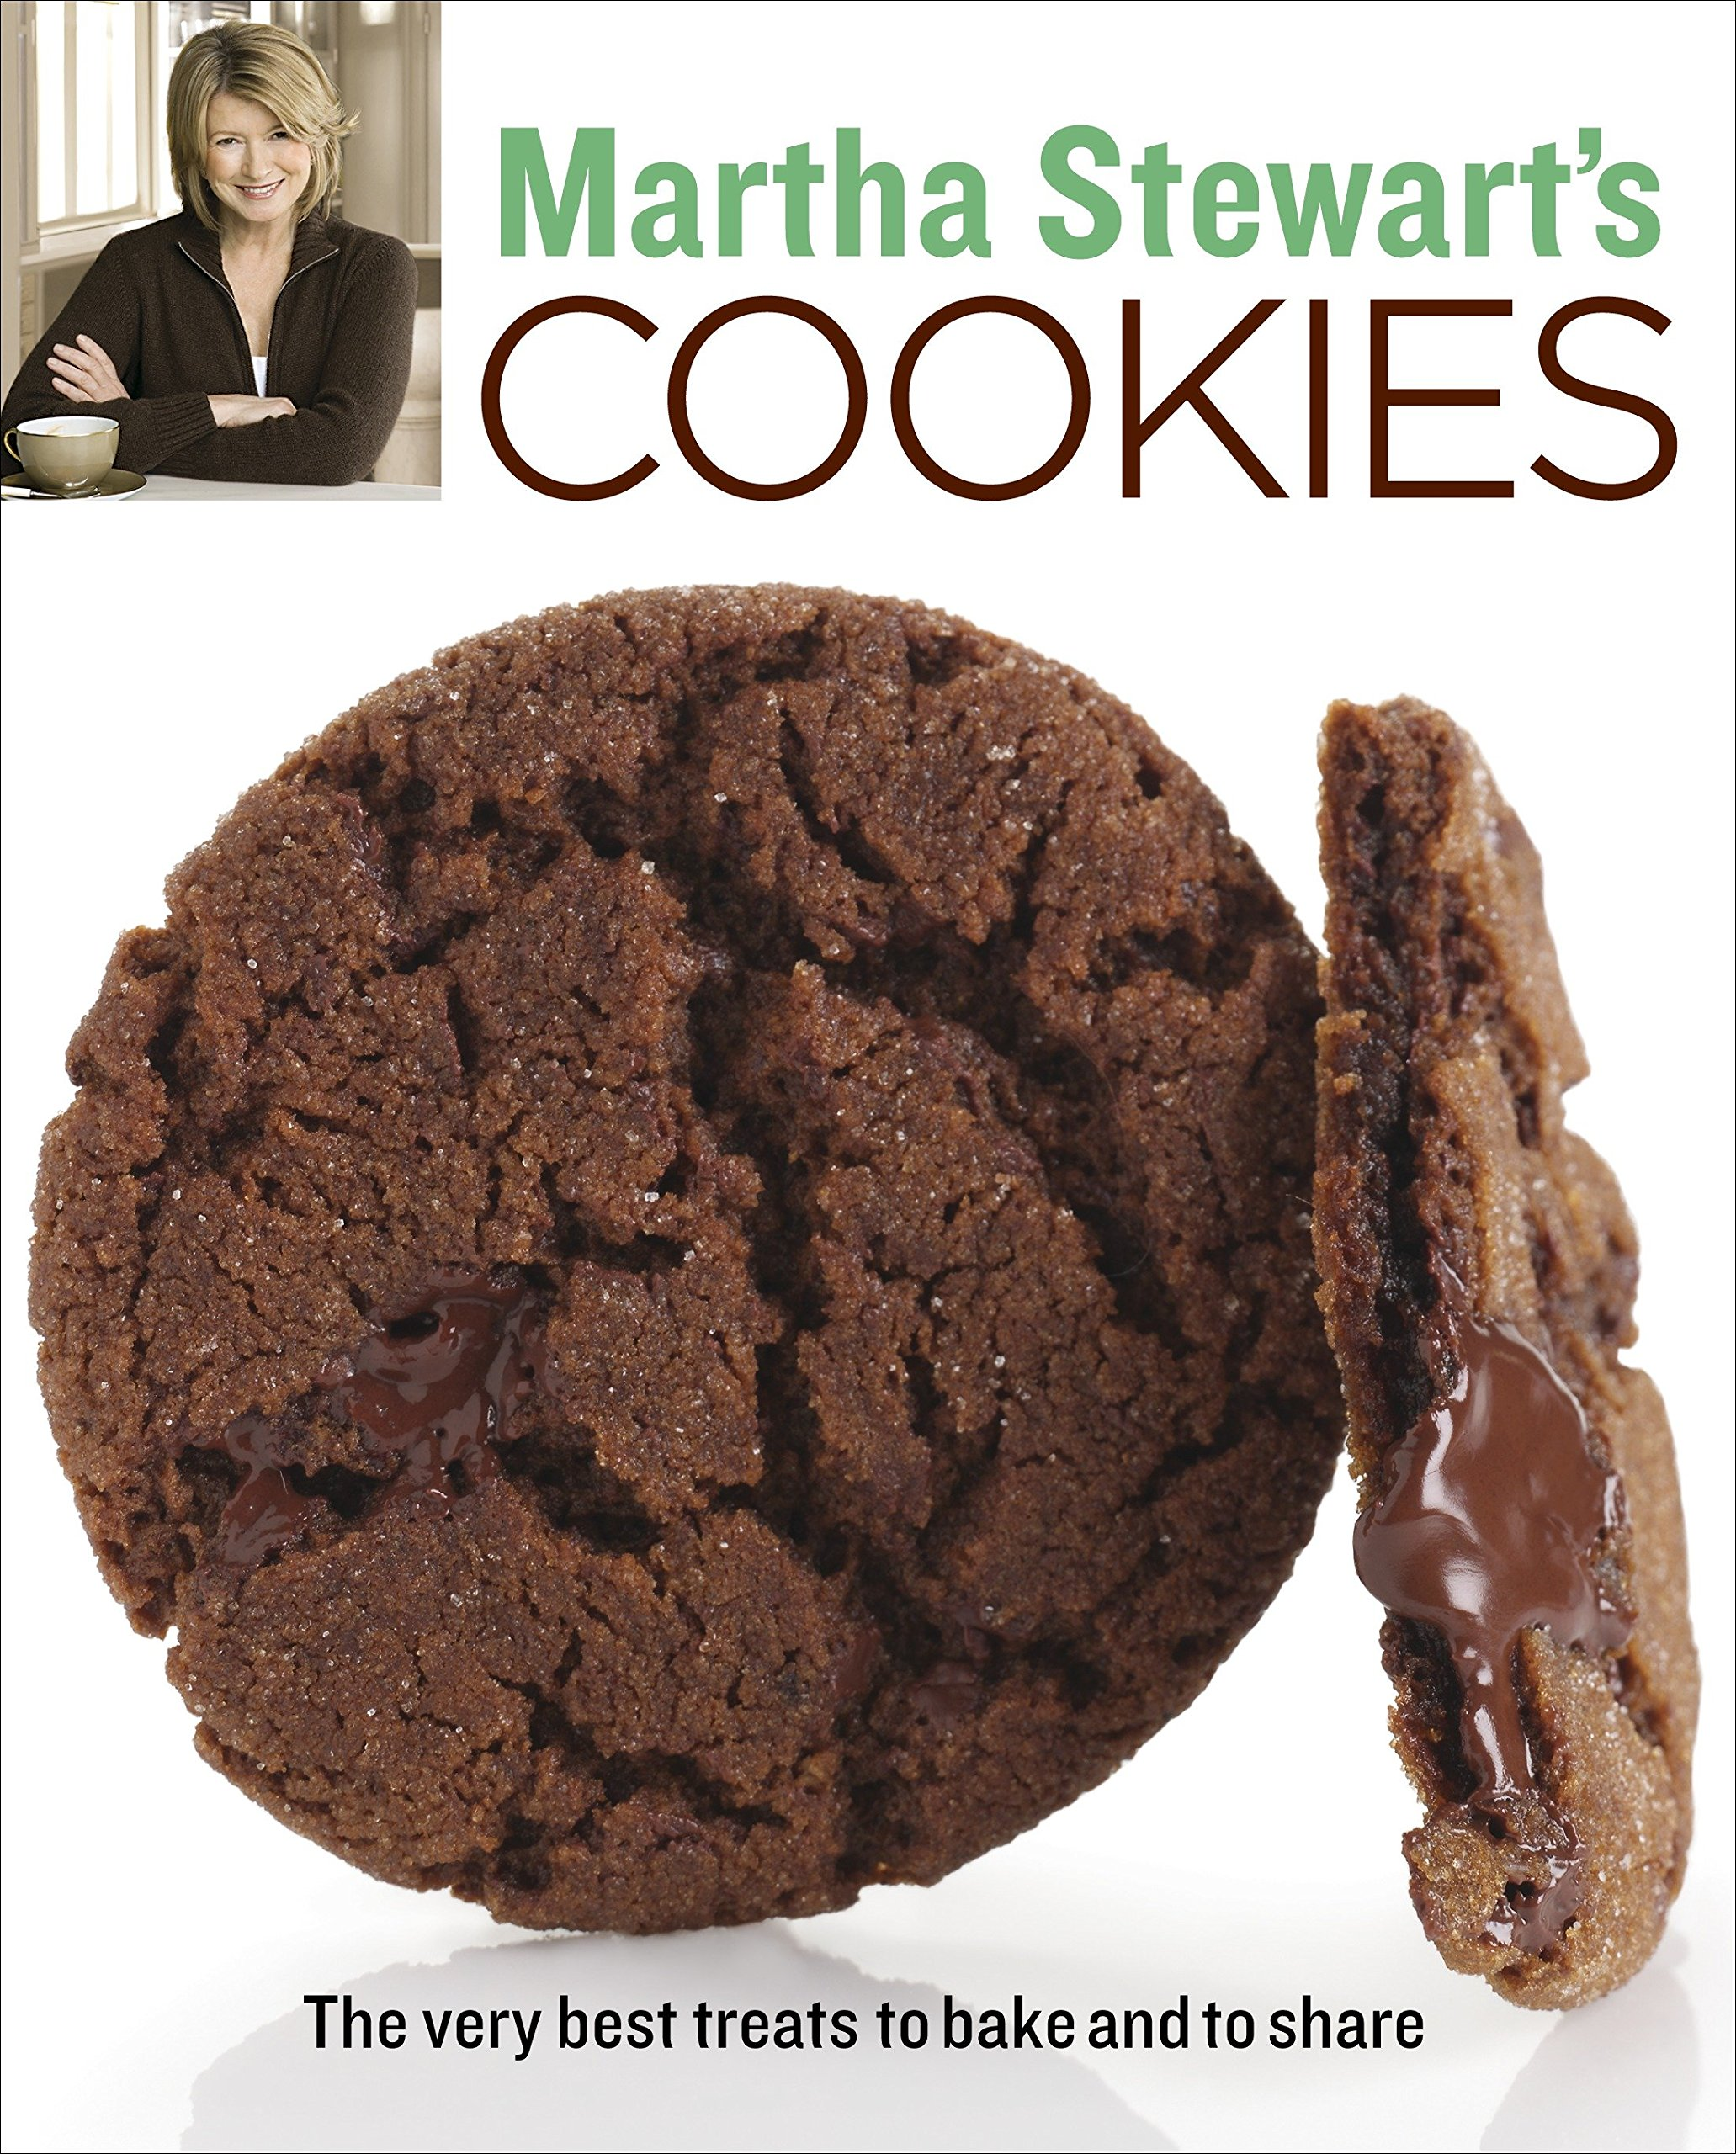 91kKDHGPu7L - Martha Stewart's Cookies: The Very Best Treats to Bake and to Share